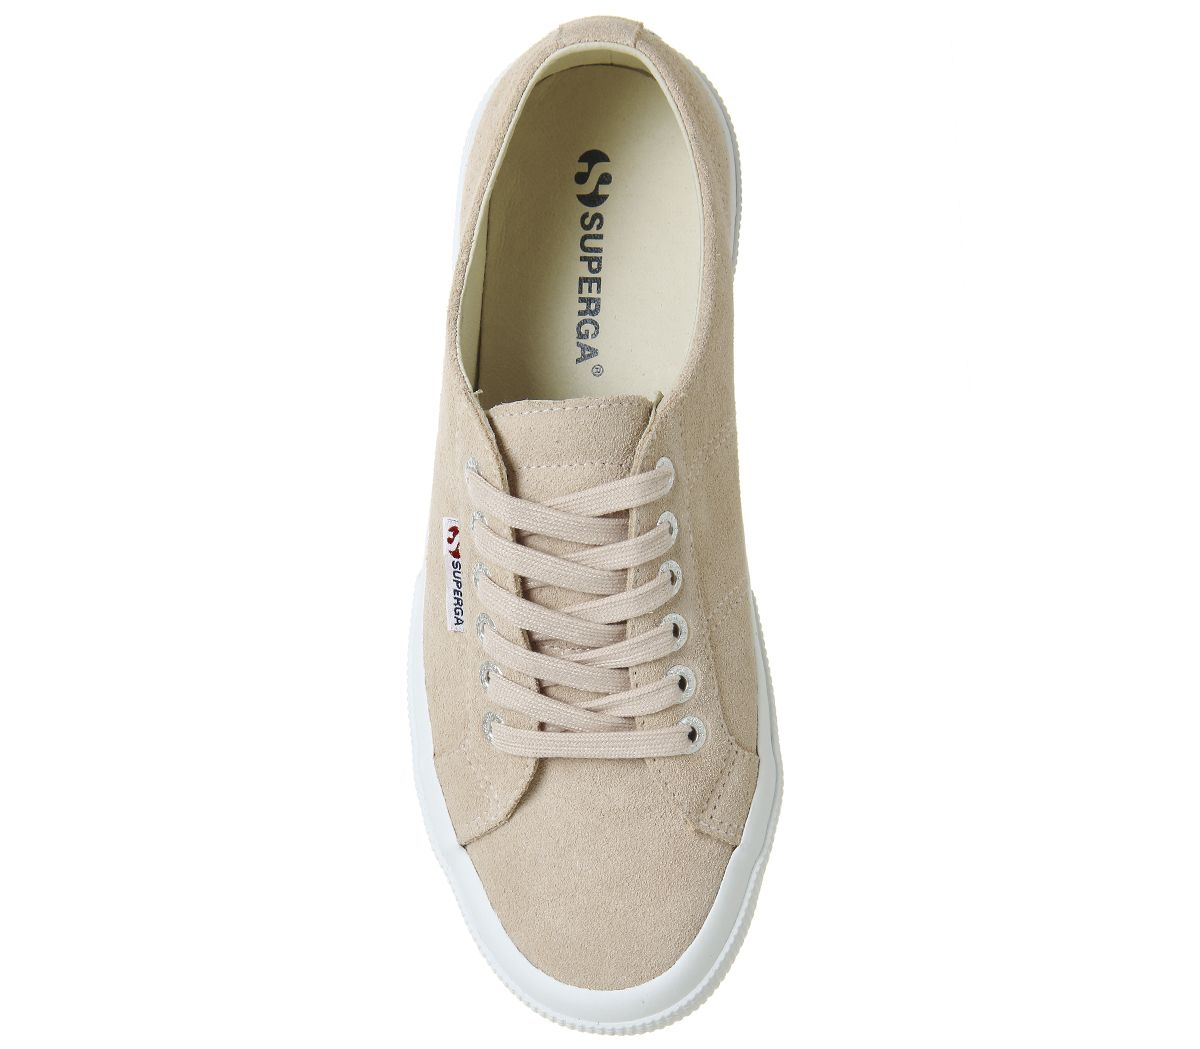 08a3c37f021 Superga 2750 Trainers Pink Skin Suede - Hers trainers